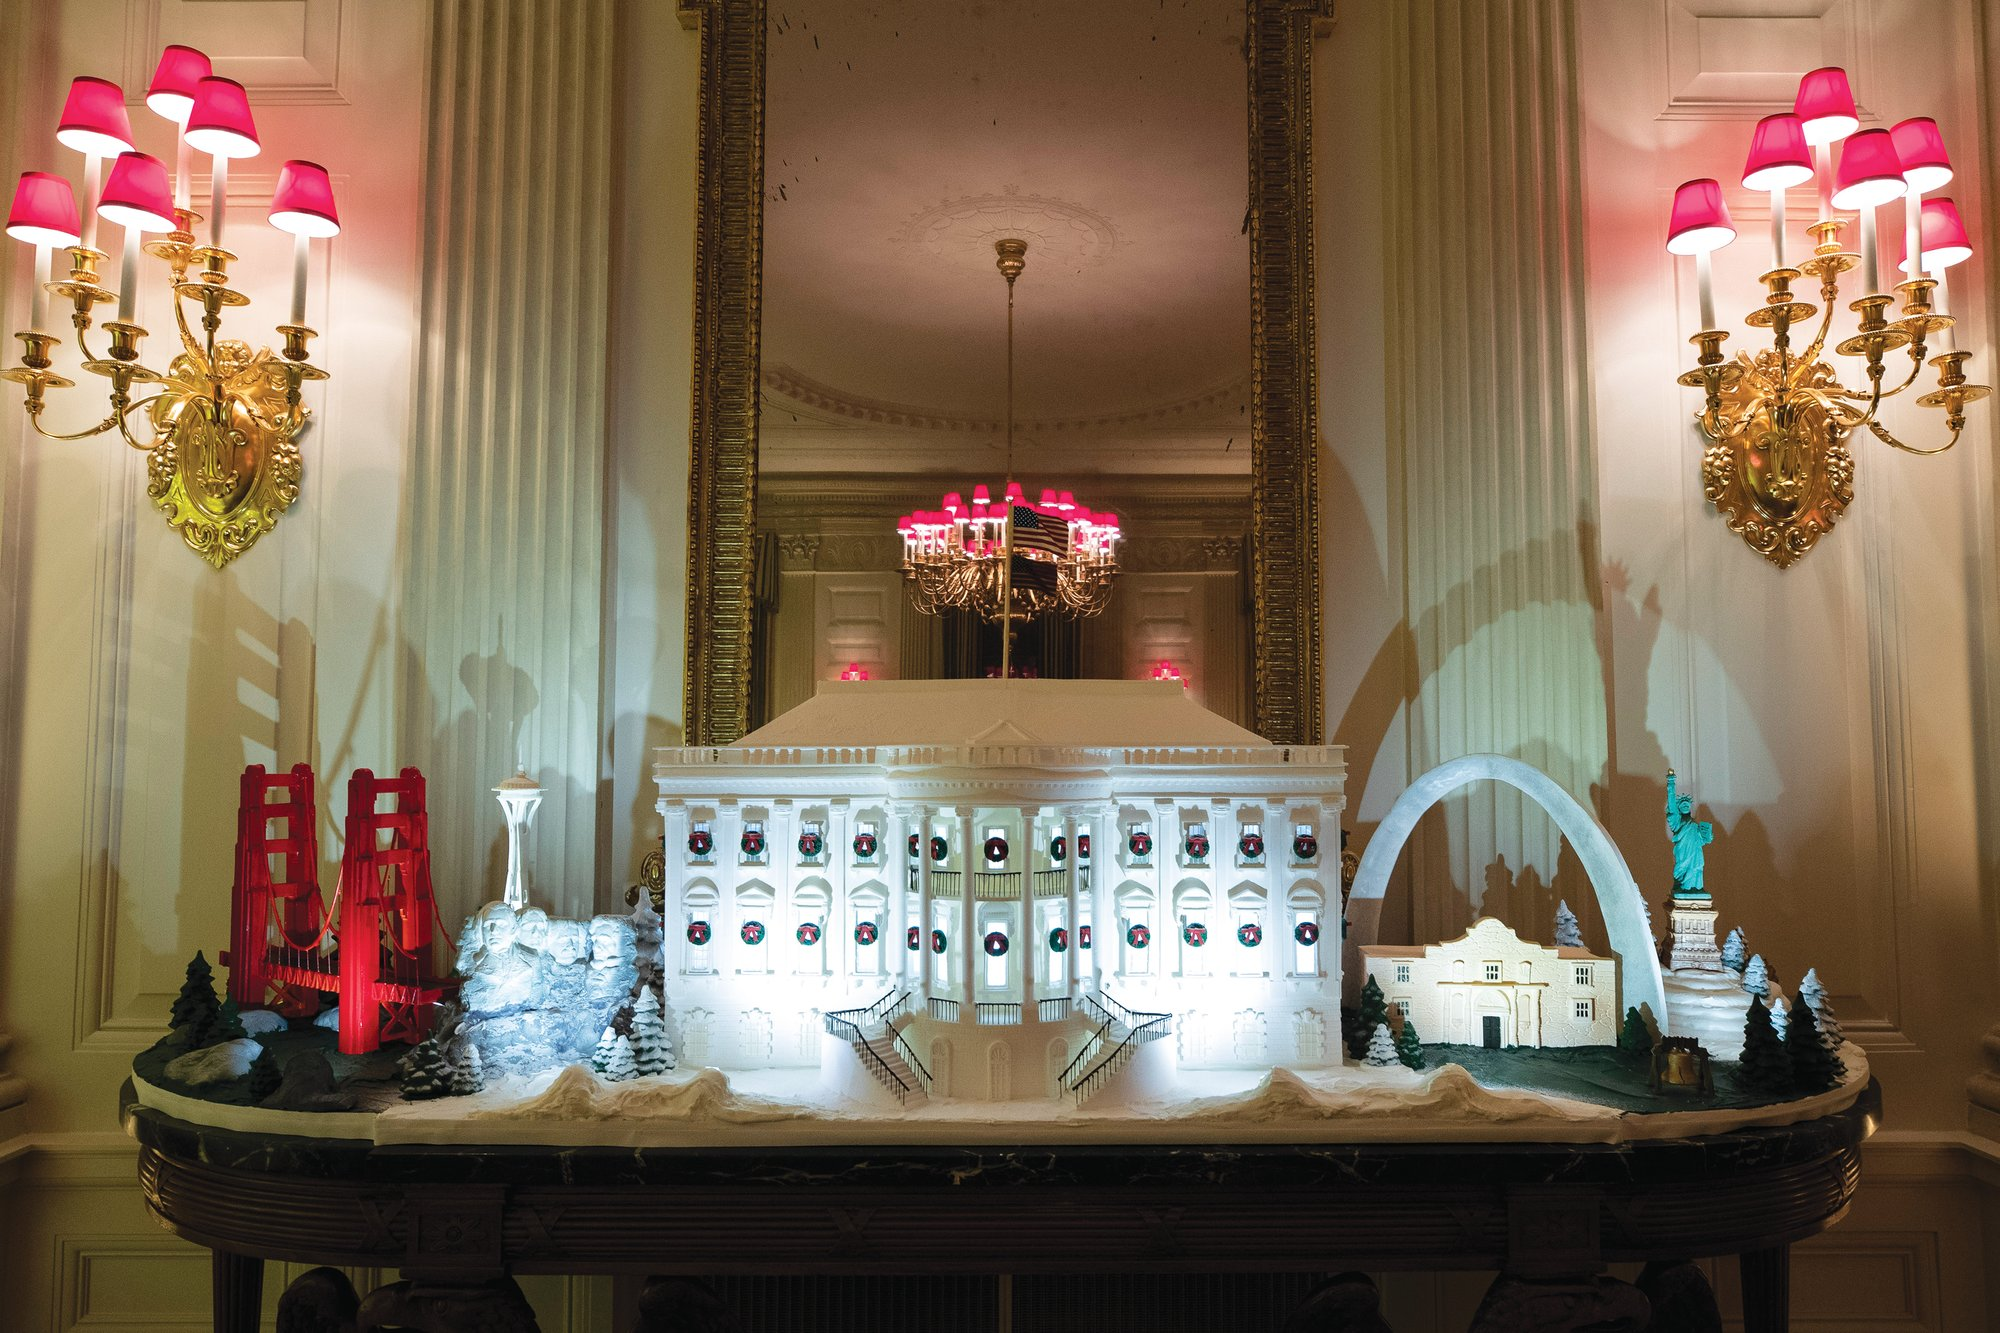 The White House made of gingerbread in the State Dining Room features landmarks from across the country.